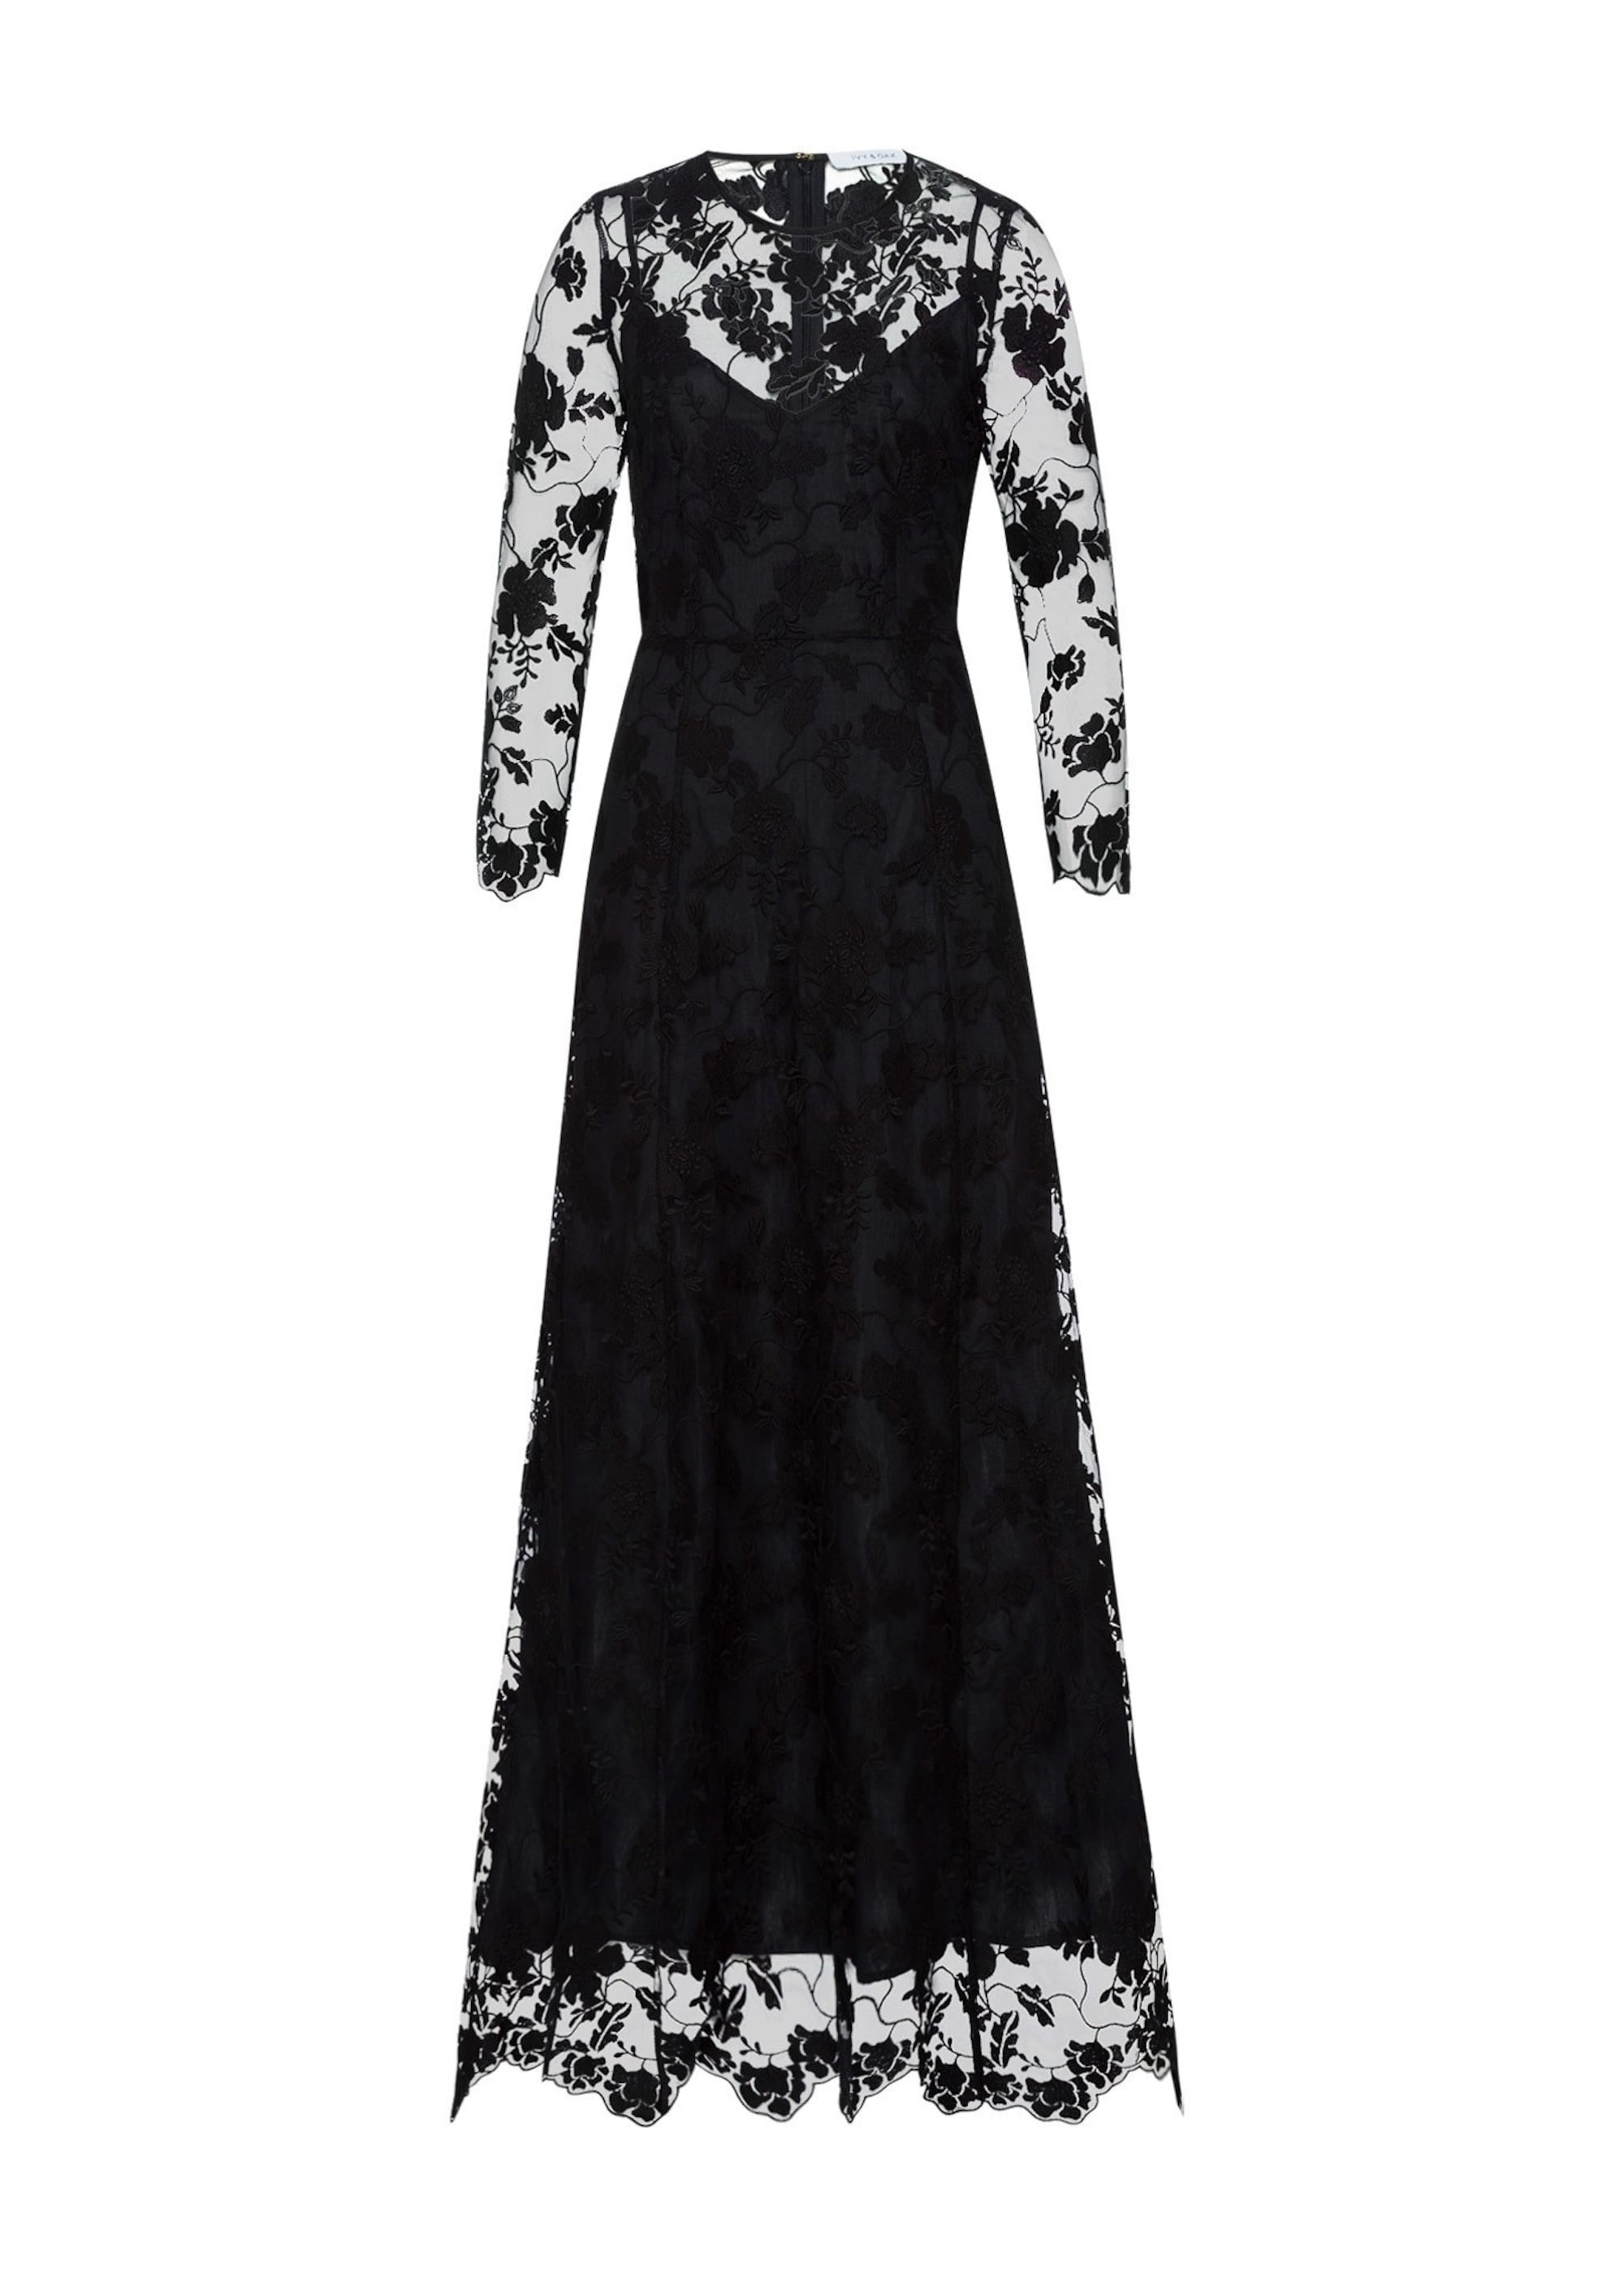 ´Embroidered Evening Dress´